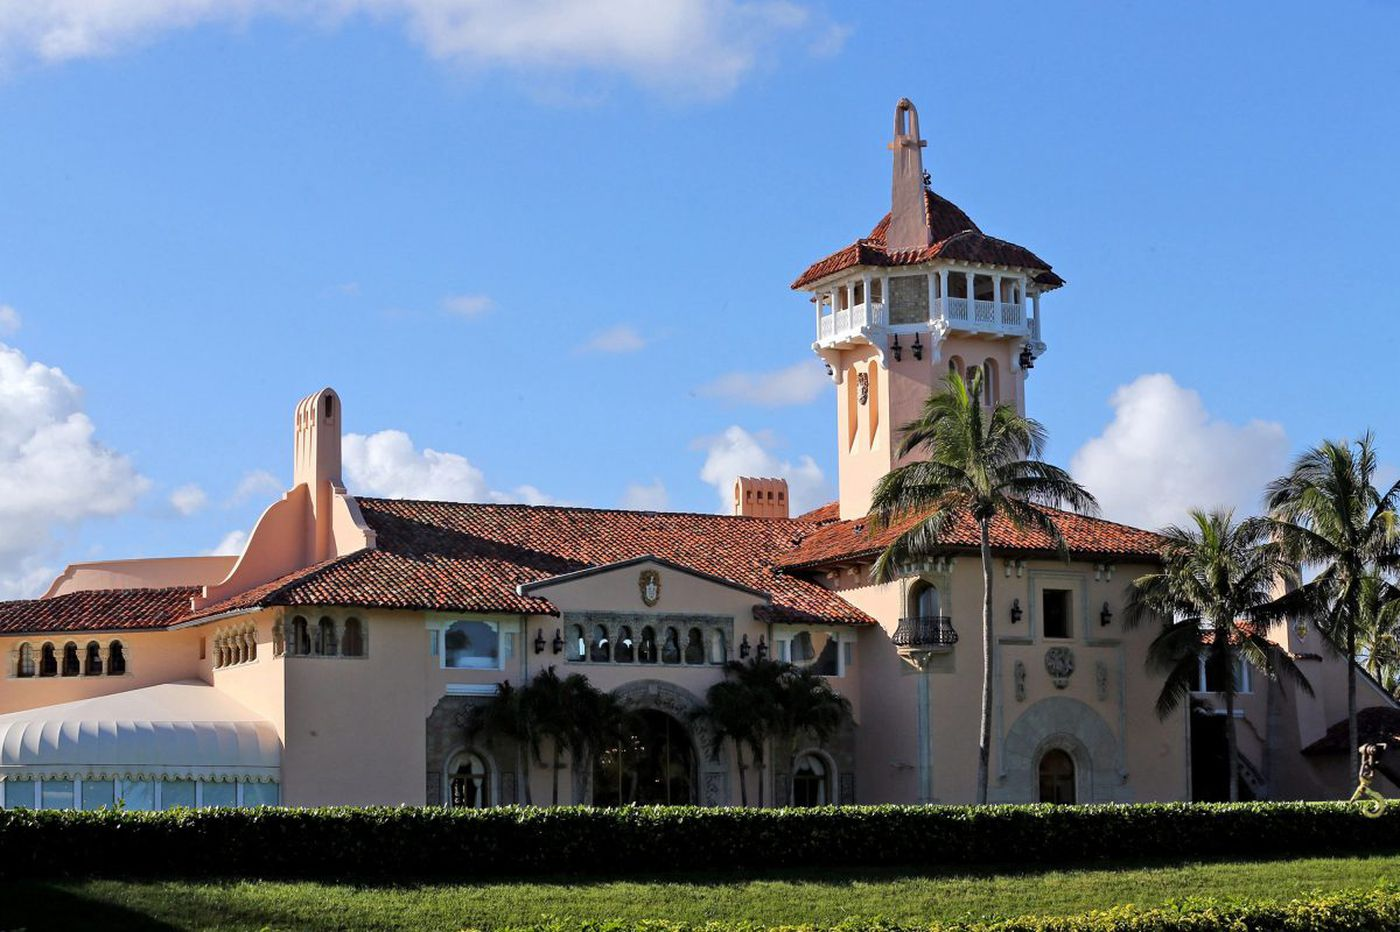 Ticket prices go up for Trump's 'very glam' New Year's Eve bash at Mar-a-Lago